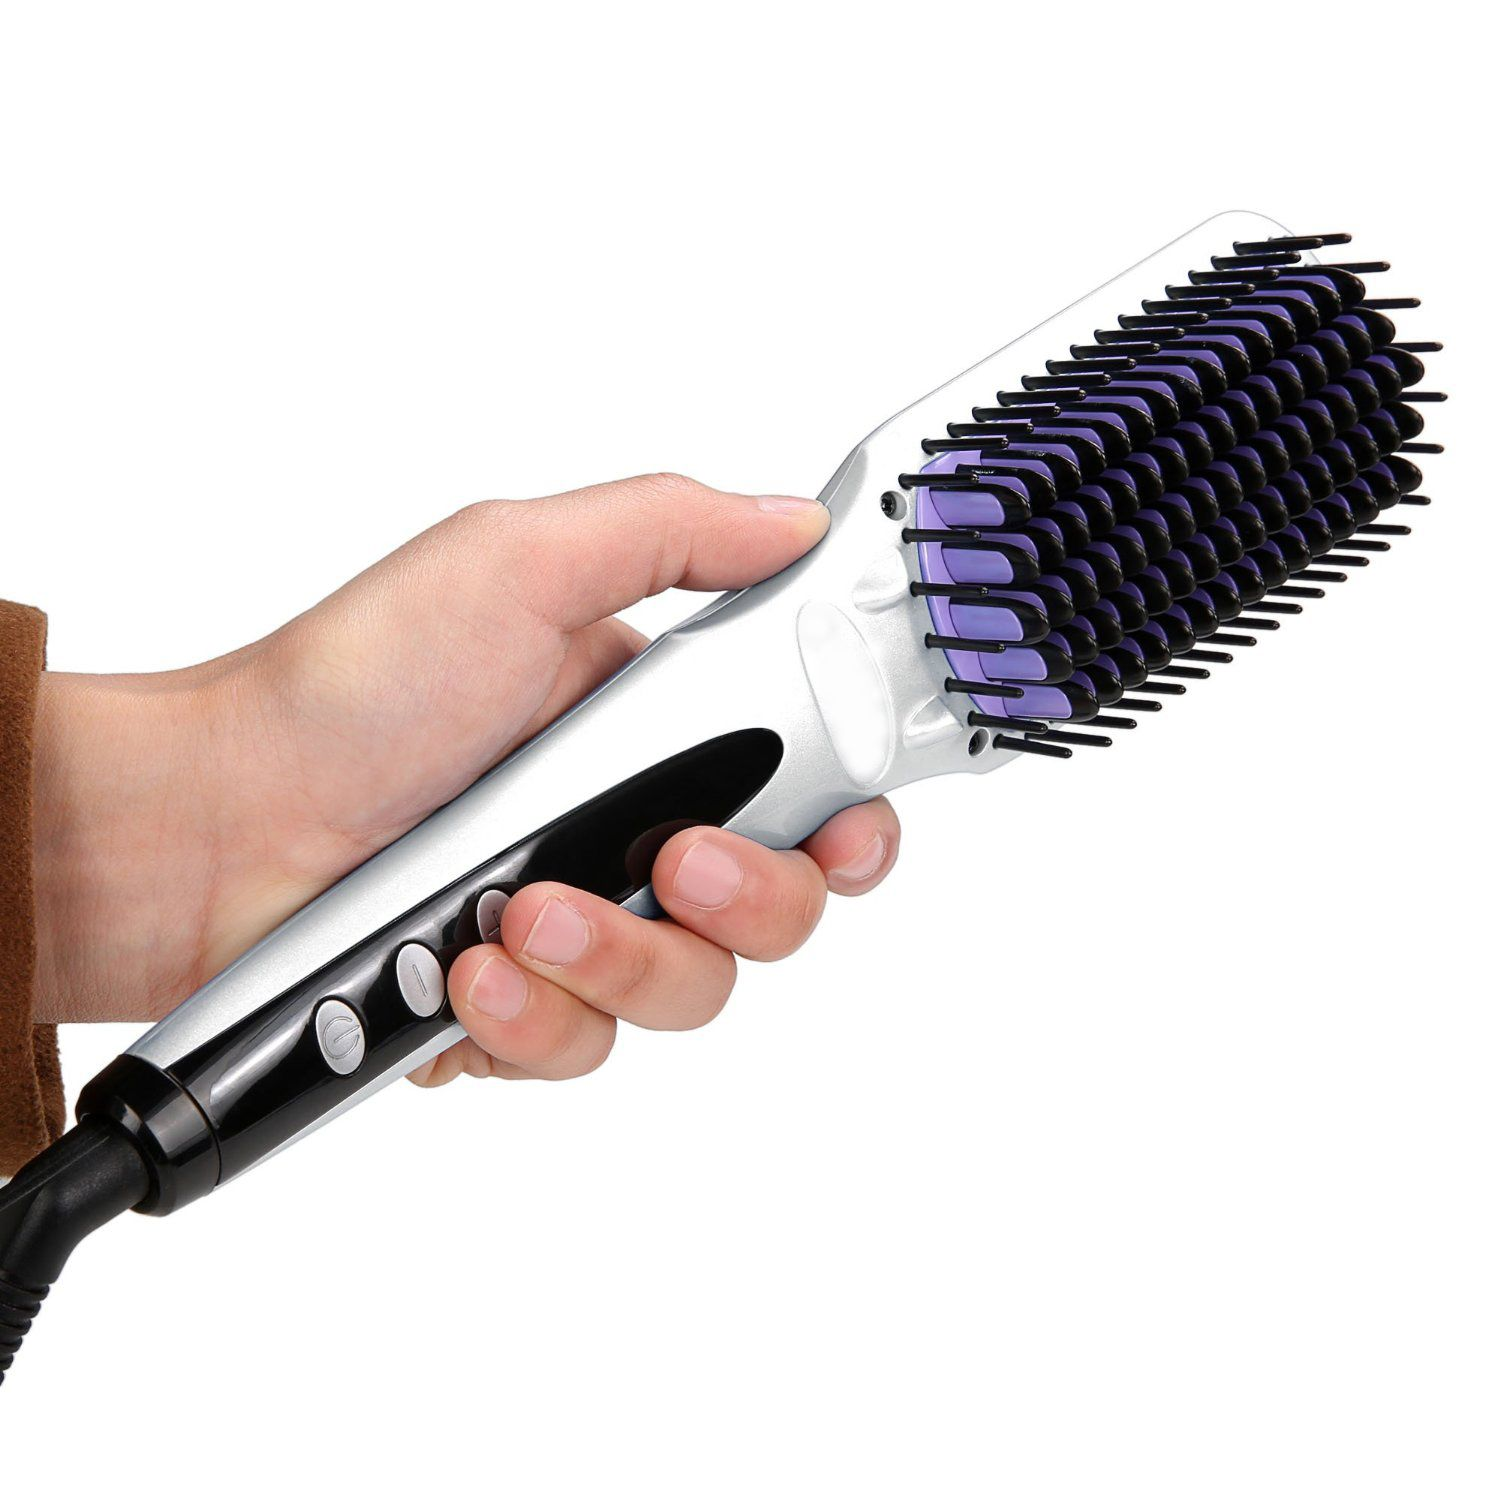 Electra Hair Brush Straightener Review Natural straight